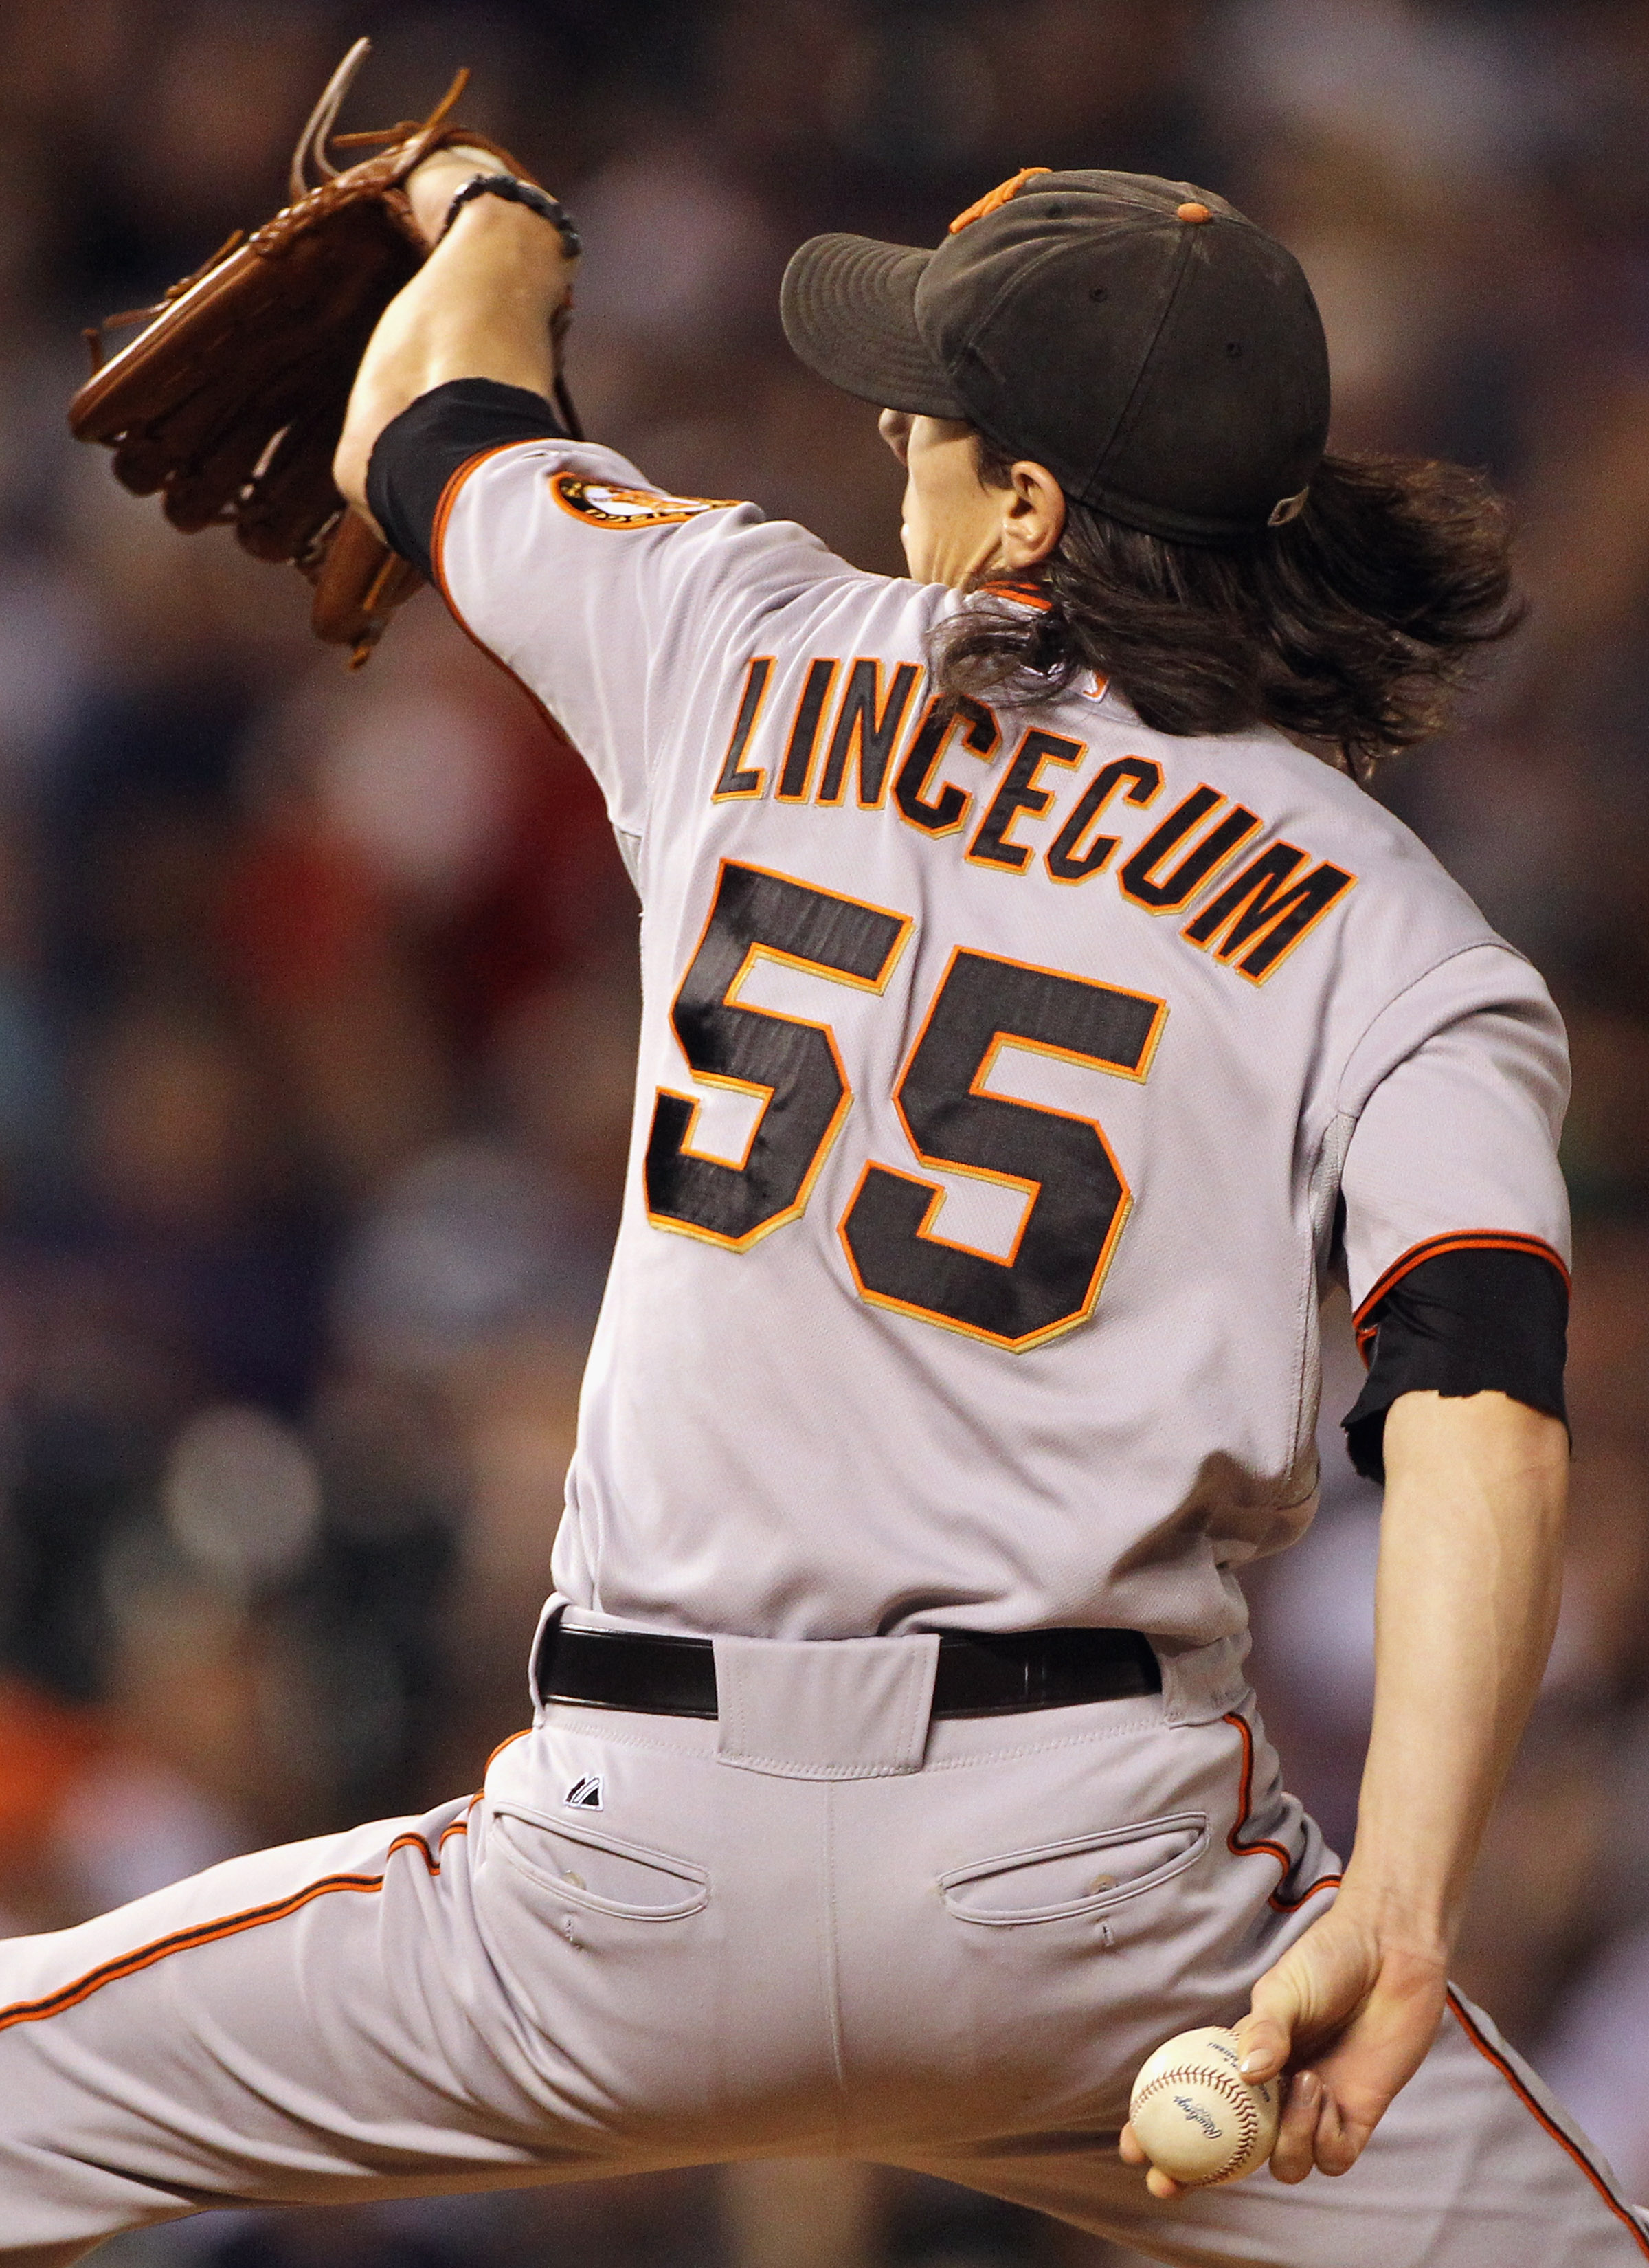 DENVER - SEPTEMBER 24:  Starting pitcher Tim Lincecum #55 of the San Francisco Giants delivers against the Colorado Rockies at Coors Field on September 24, 2010 in Denver, Colorado. Lincecum earned the win as the Giants defeated the Rockies 2-1.  (Photo b